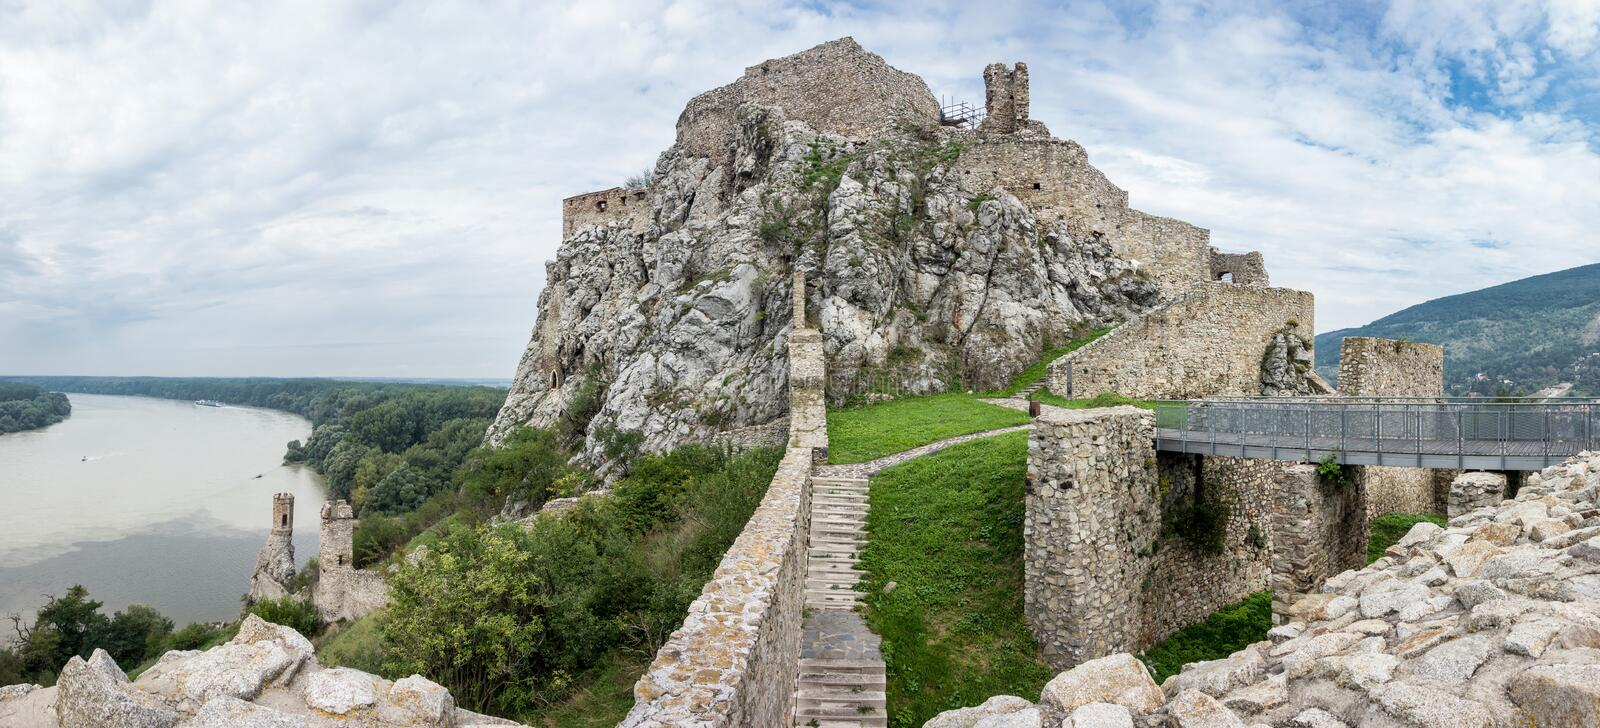 Devin castle royalty free stock photo